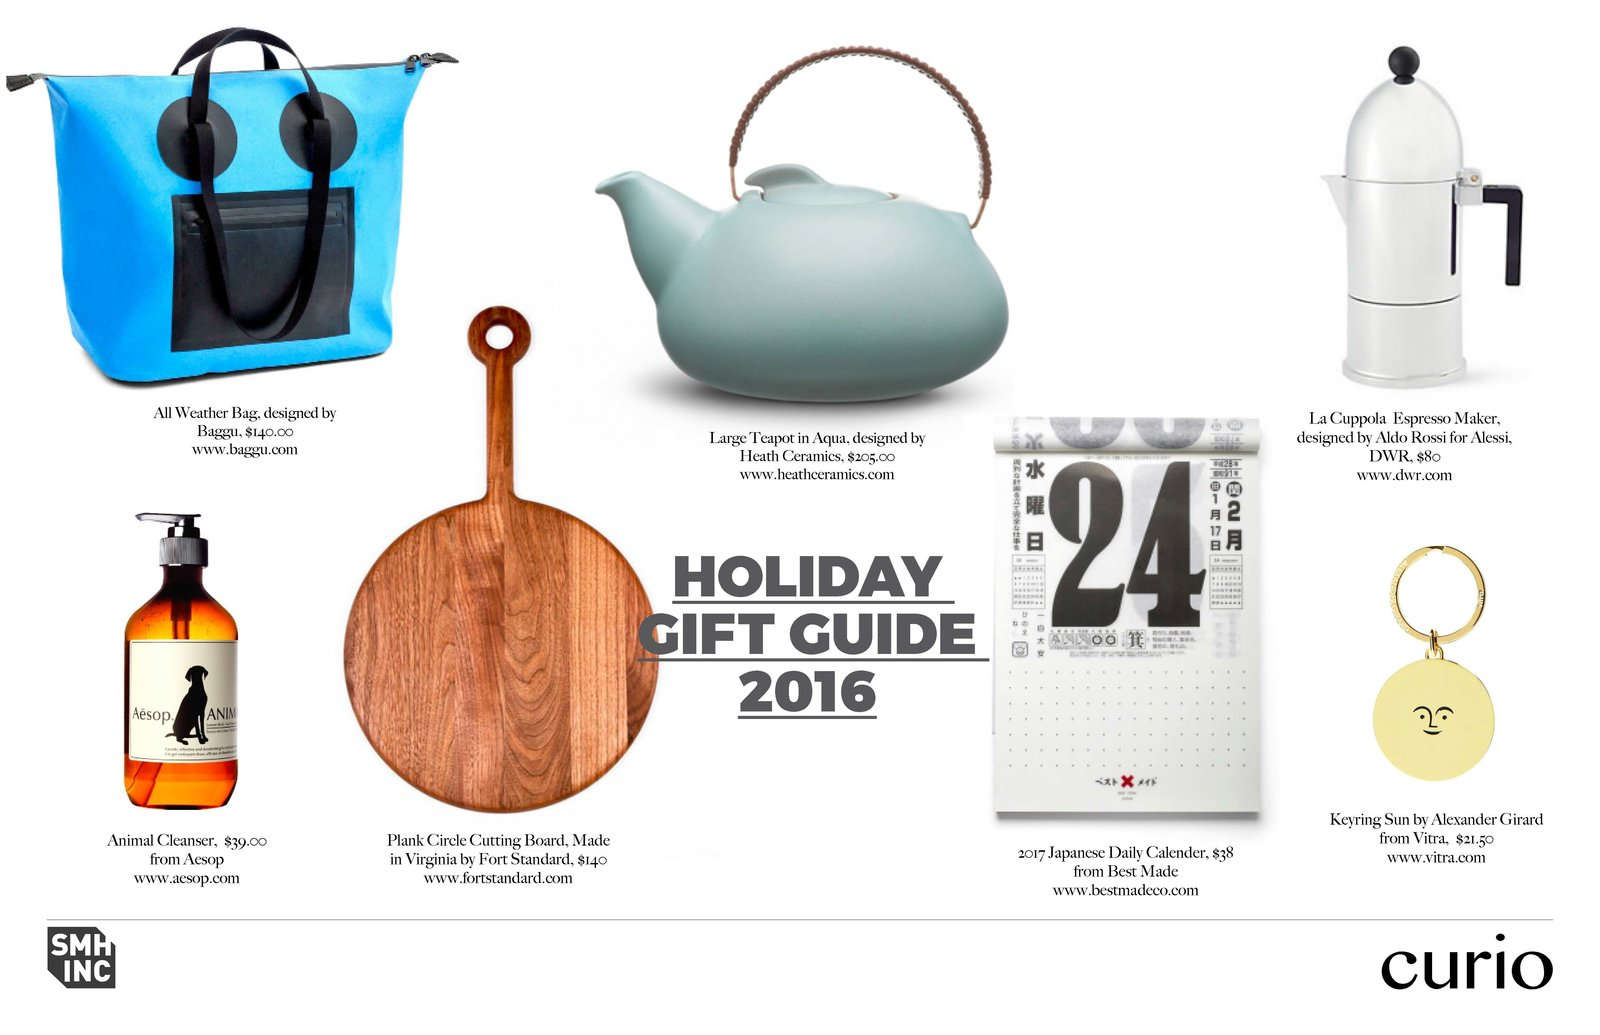 Photo 3 of 3 in SMH Inc. / Holiday Gift Guide